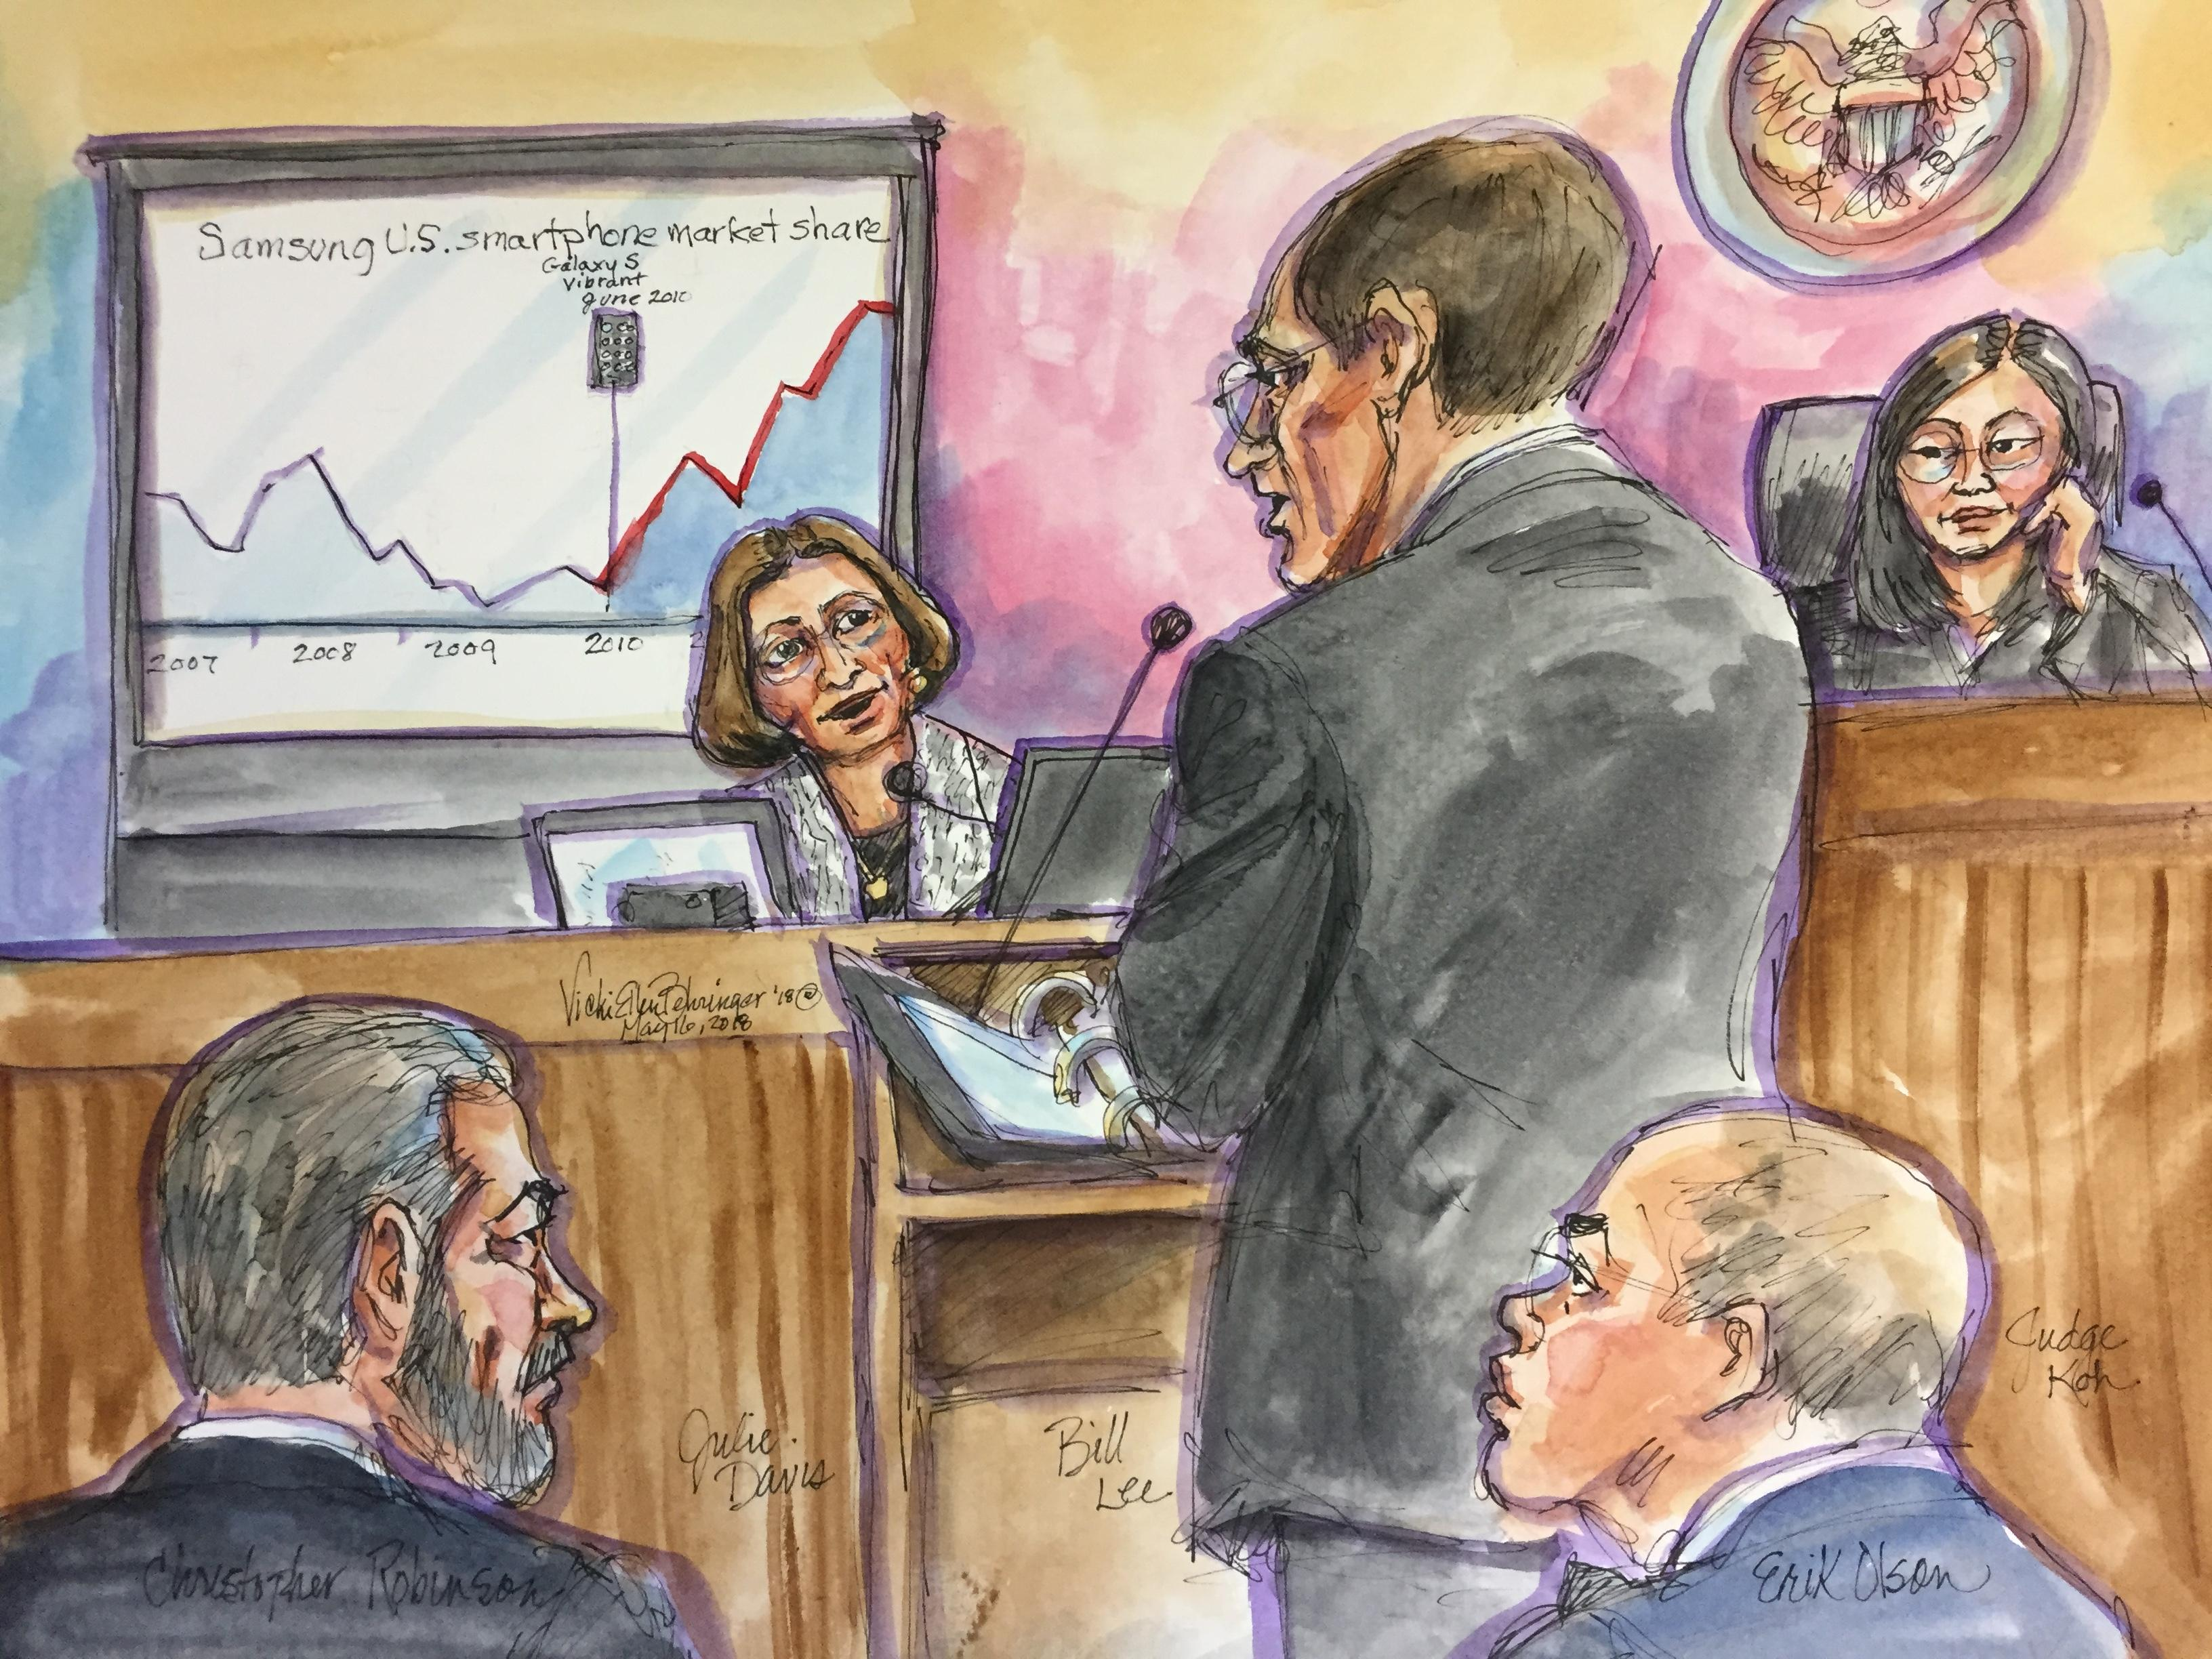 Accountant Julie Davis, a witness called by Apple, calculated that Samsung should pay Apple more than $1 billion for infringing three Apple design patents.